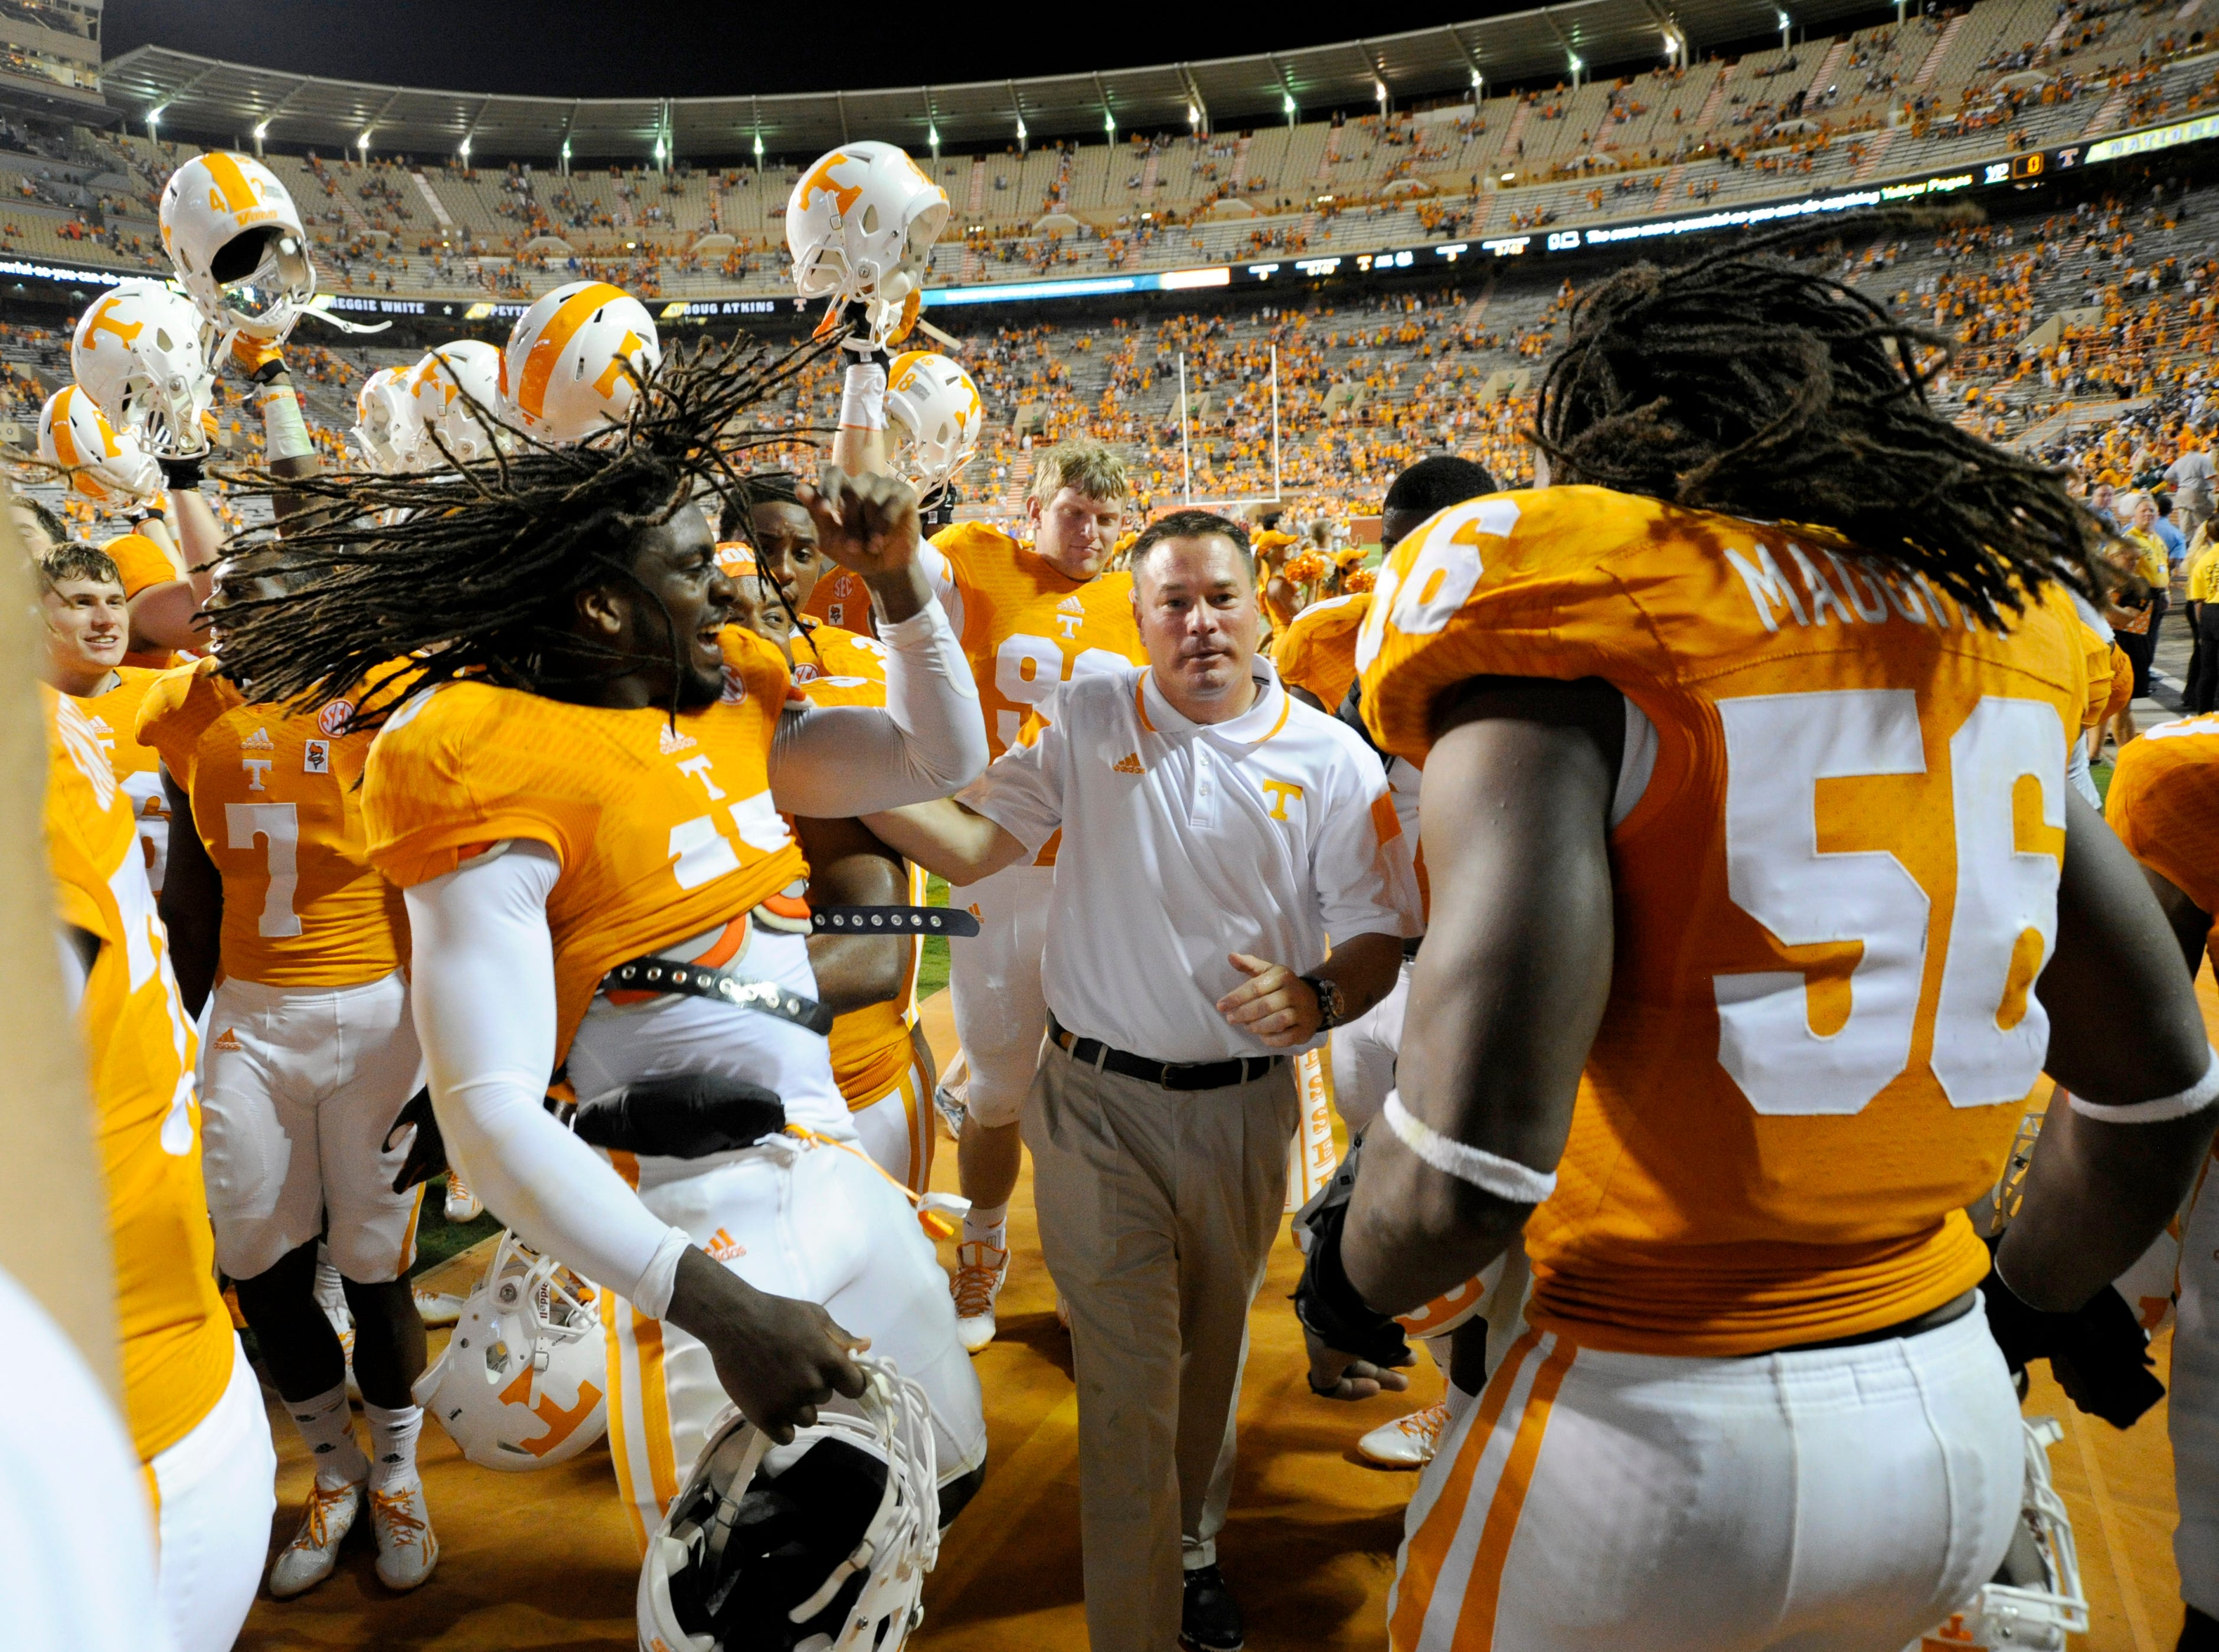 Tennessee coach Butch Jones grabs linebacker A.J. Johnson (45) and tells him to go up on the ladder with drum major and lead the band after their 38-7 victory over Utah State at Neyland Stadium, Sunday, Aug. 31, 2014 in Knoxville, Tenn.